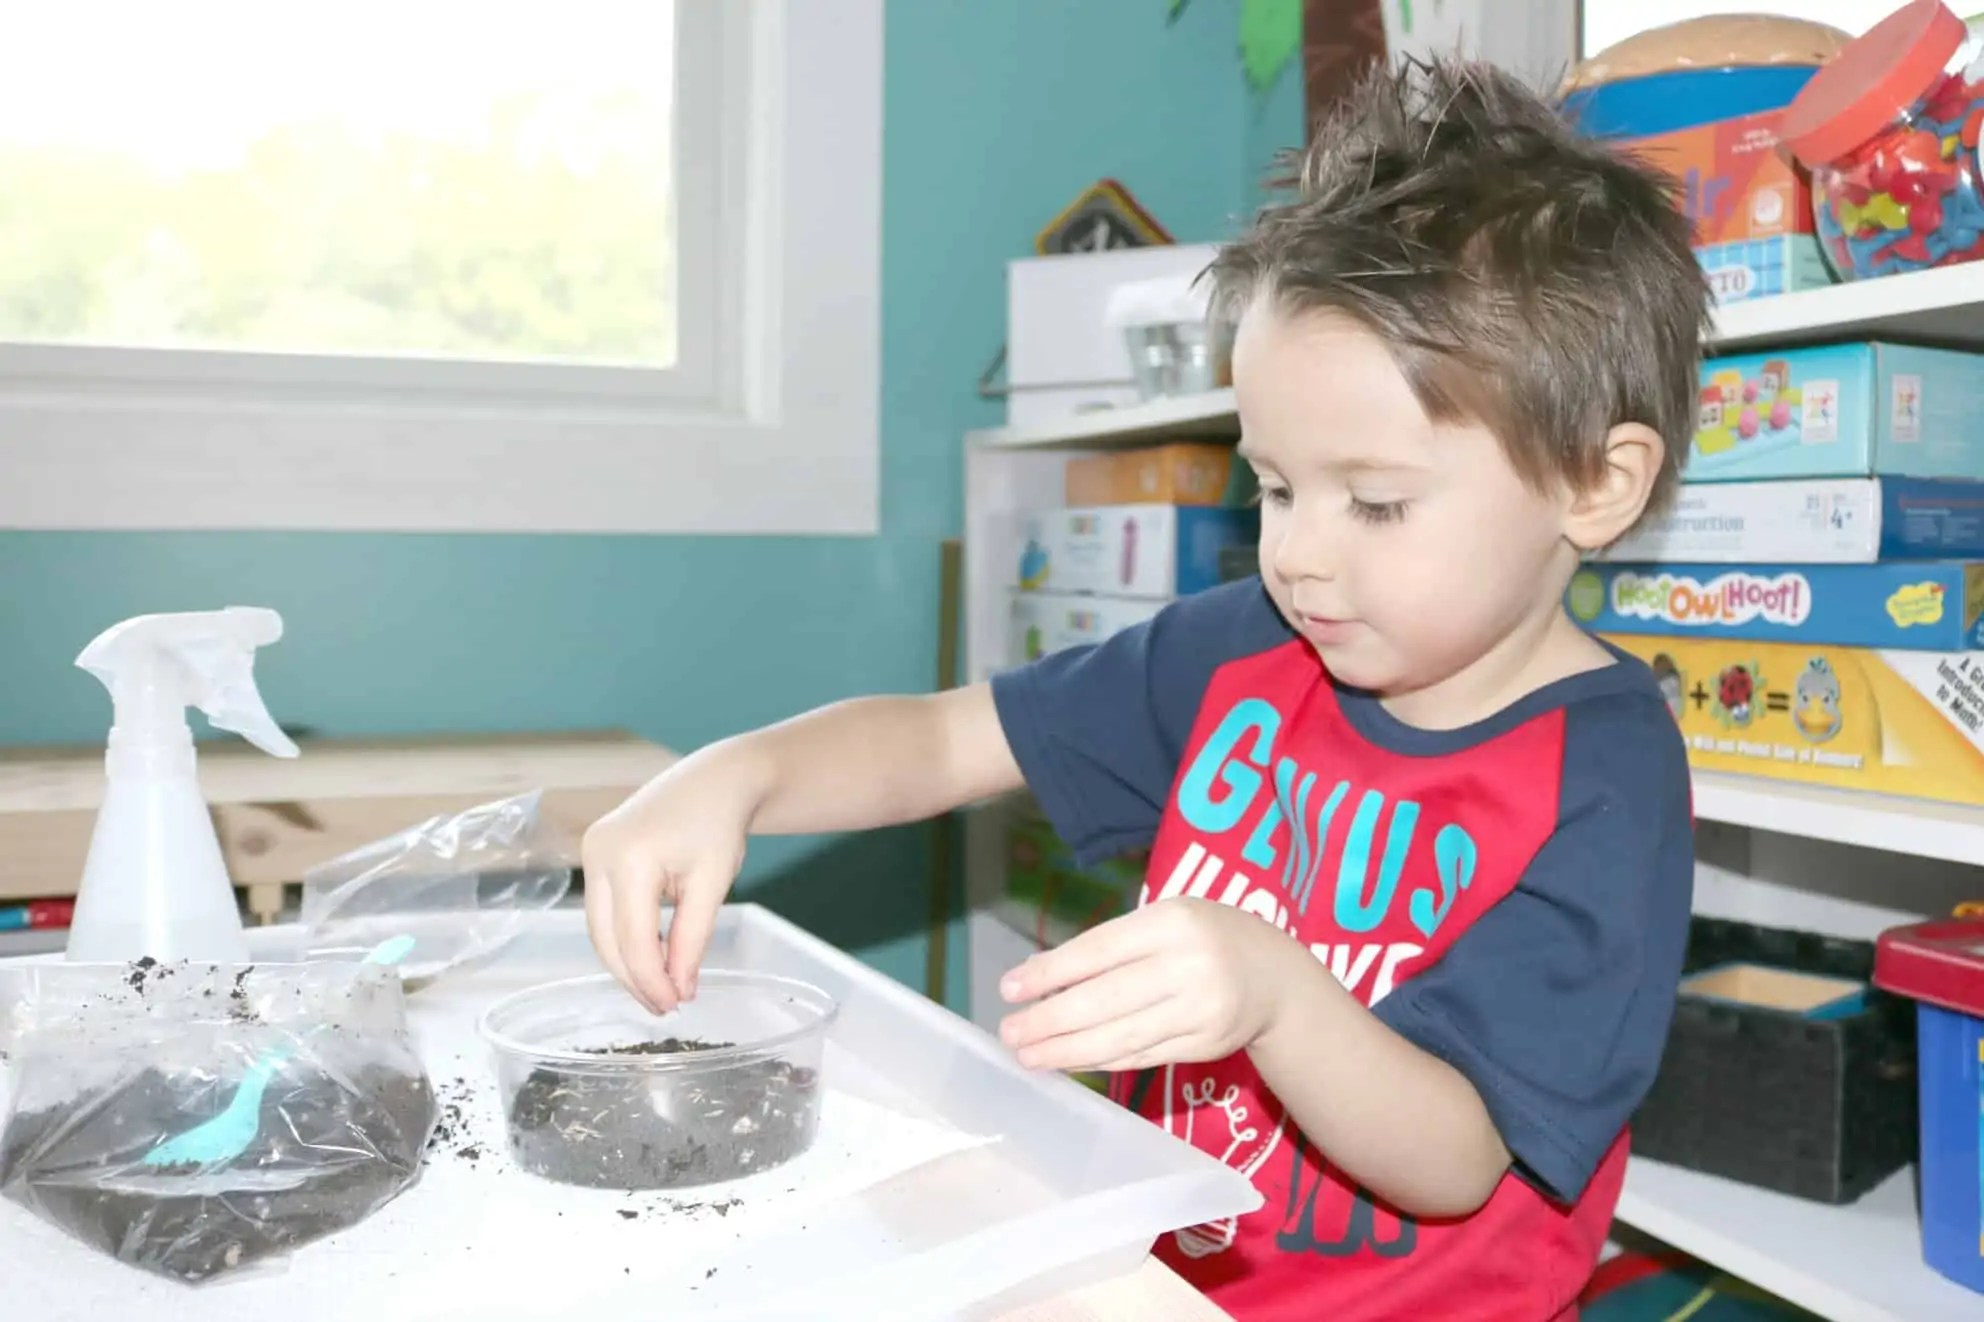 Growing Grass Make Amp Play Gardening Activity For